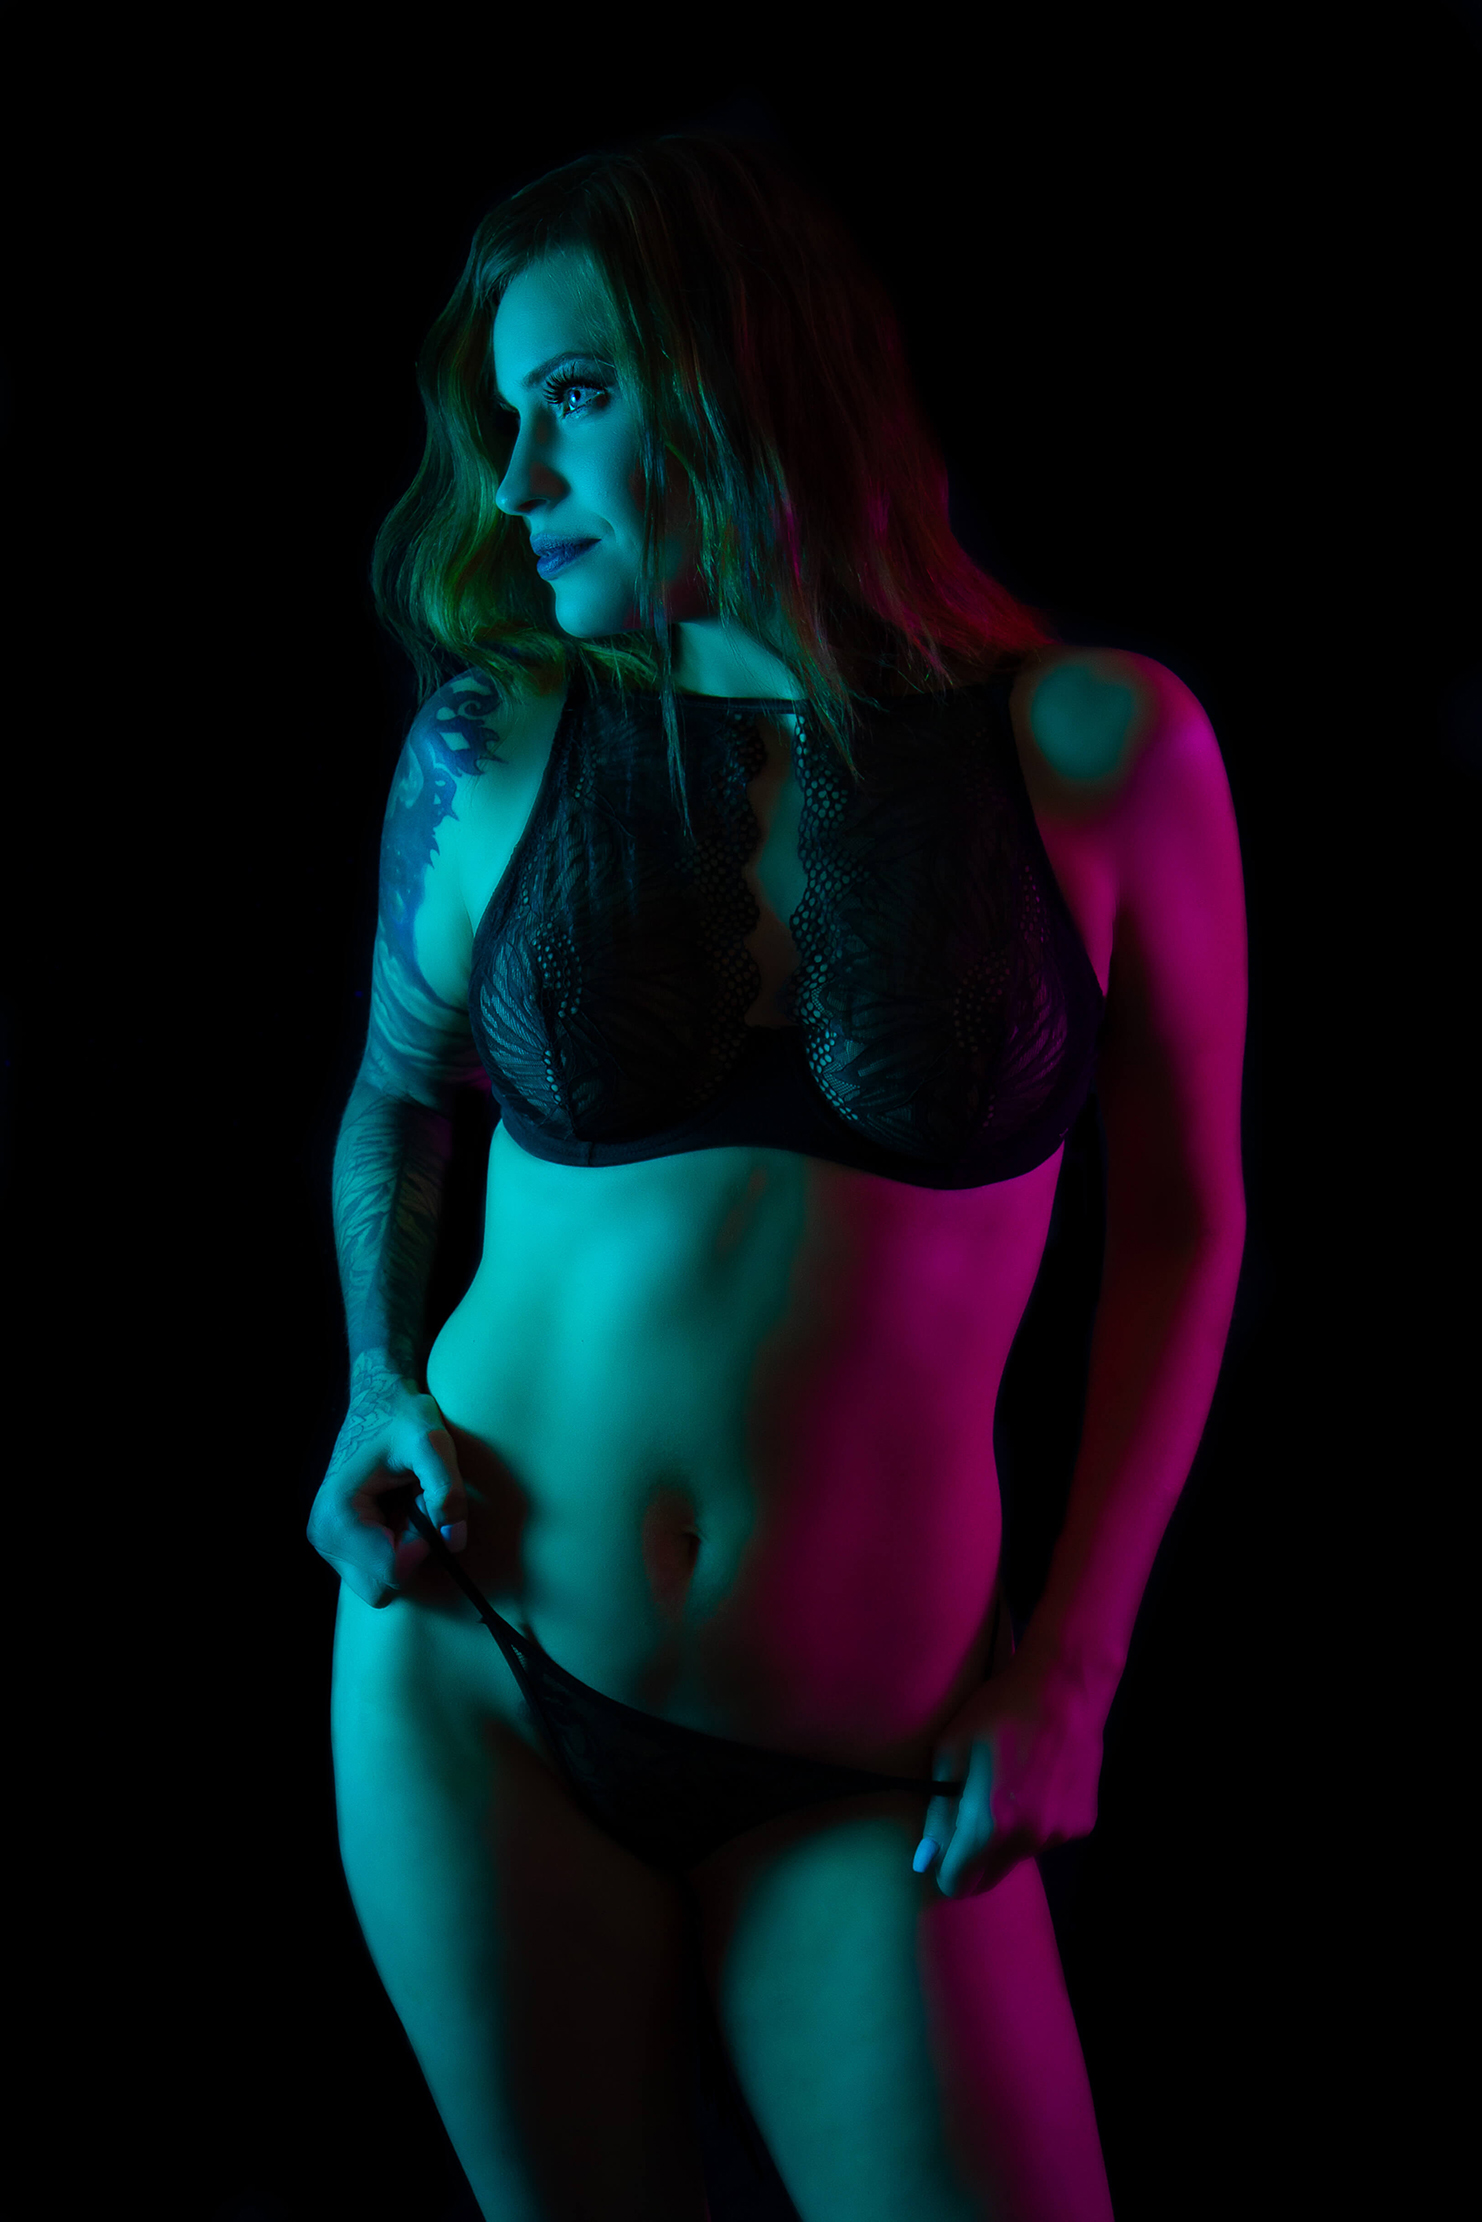 Saskatoon boudoir a woman in bralette and panty poses with a hip popped looking off camera. Split lighting in teal and pink